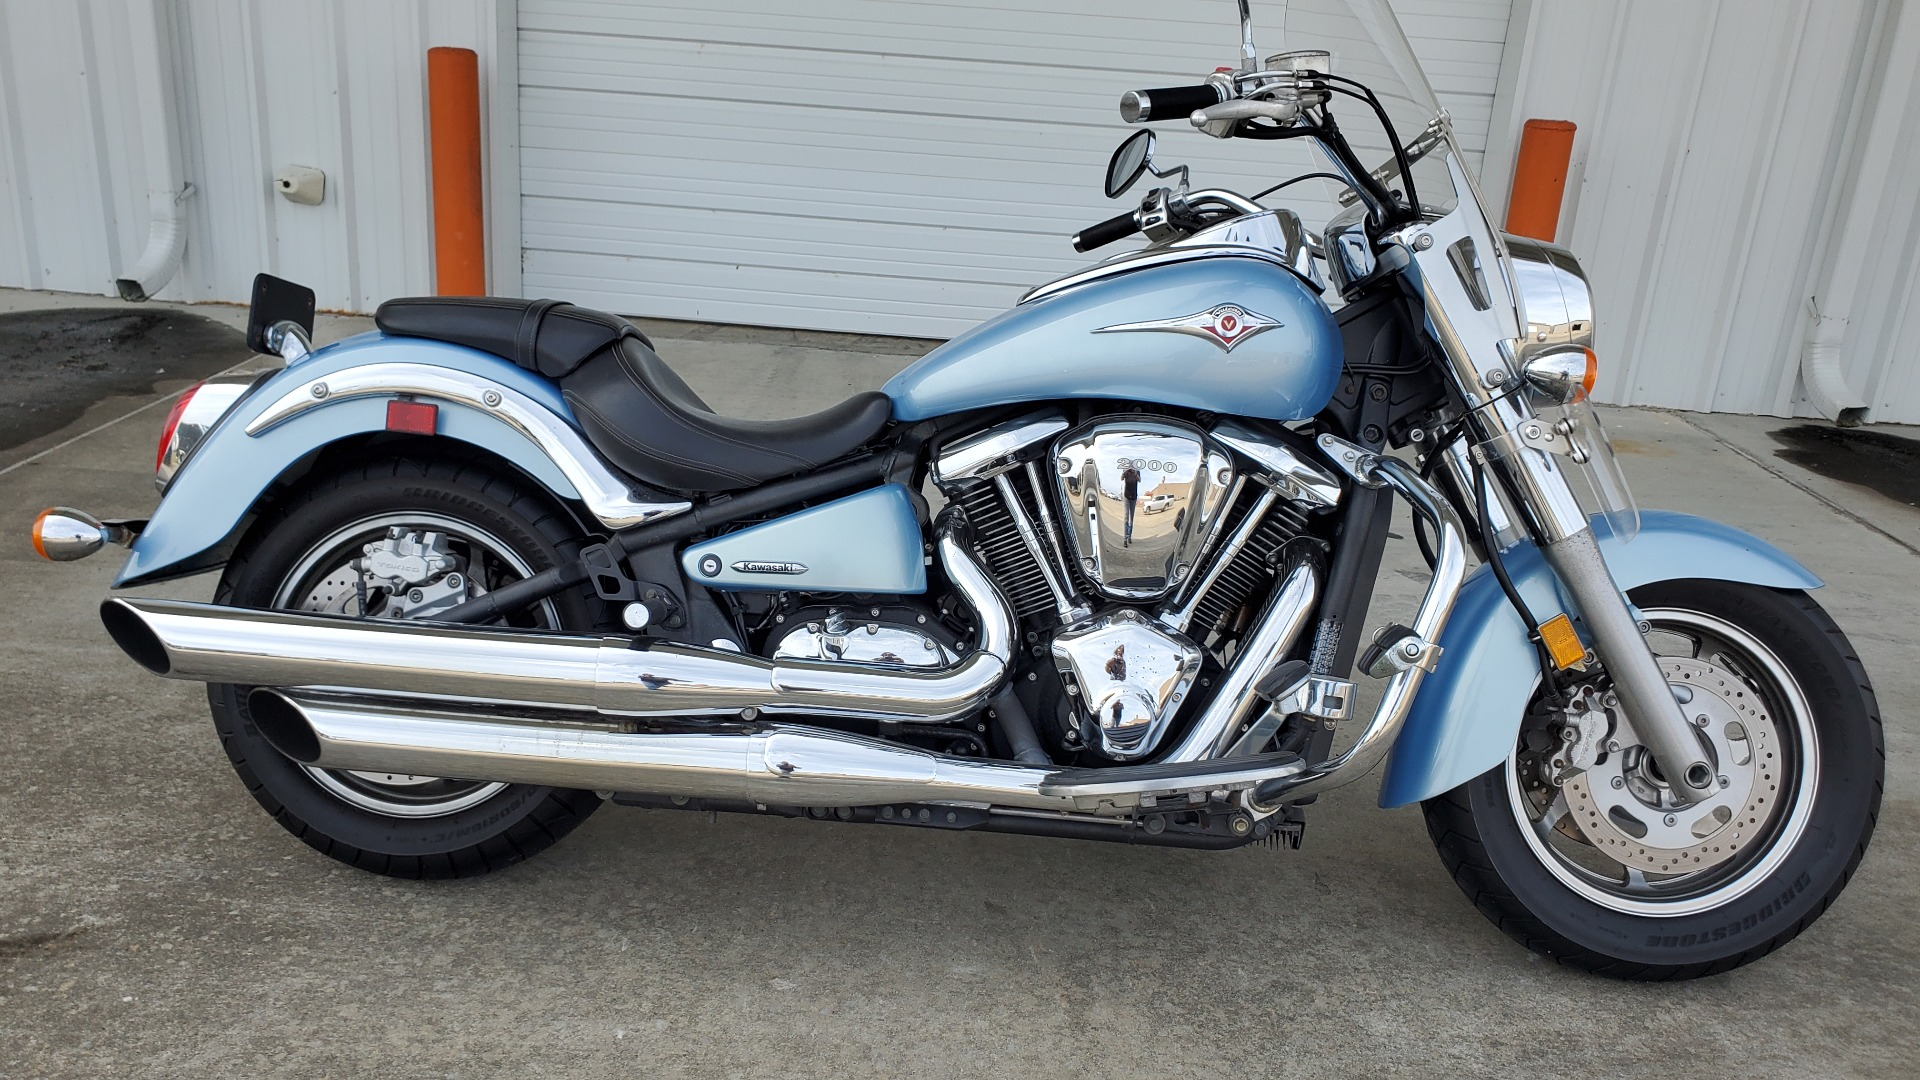 2004 kawasaki vulcan 2000 for sale near me - Photo 13